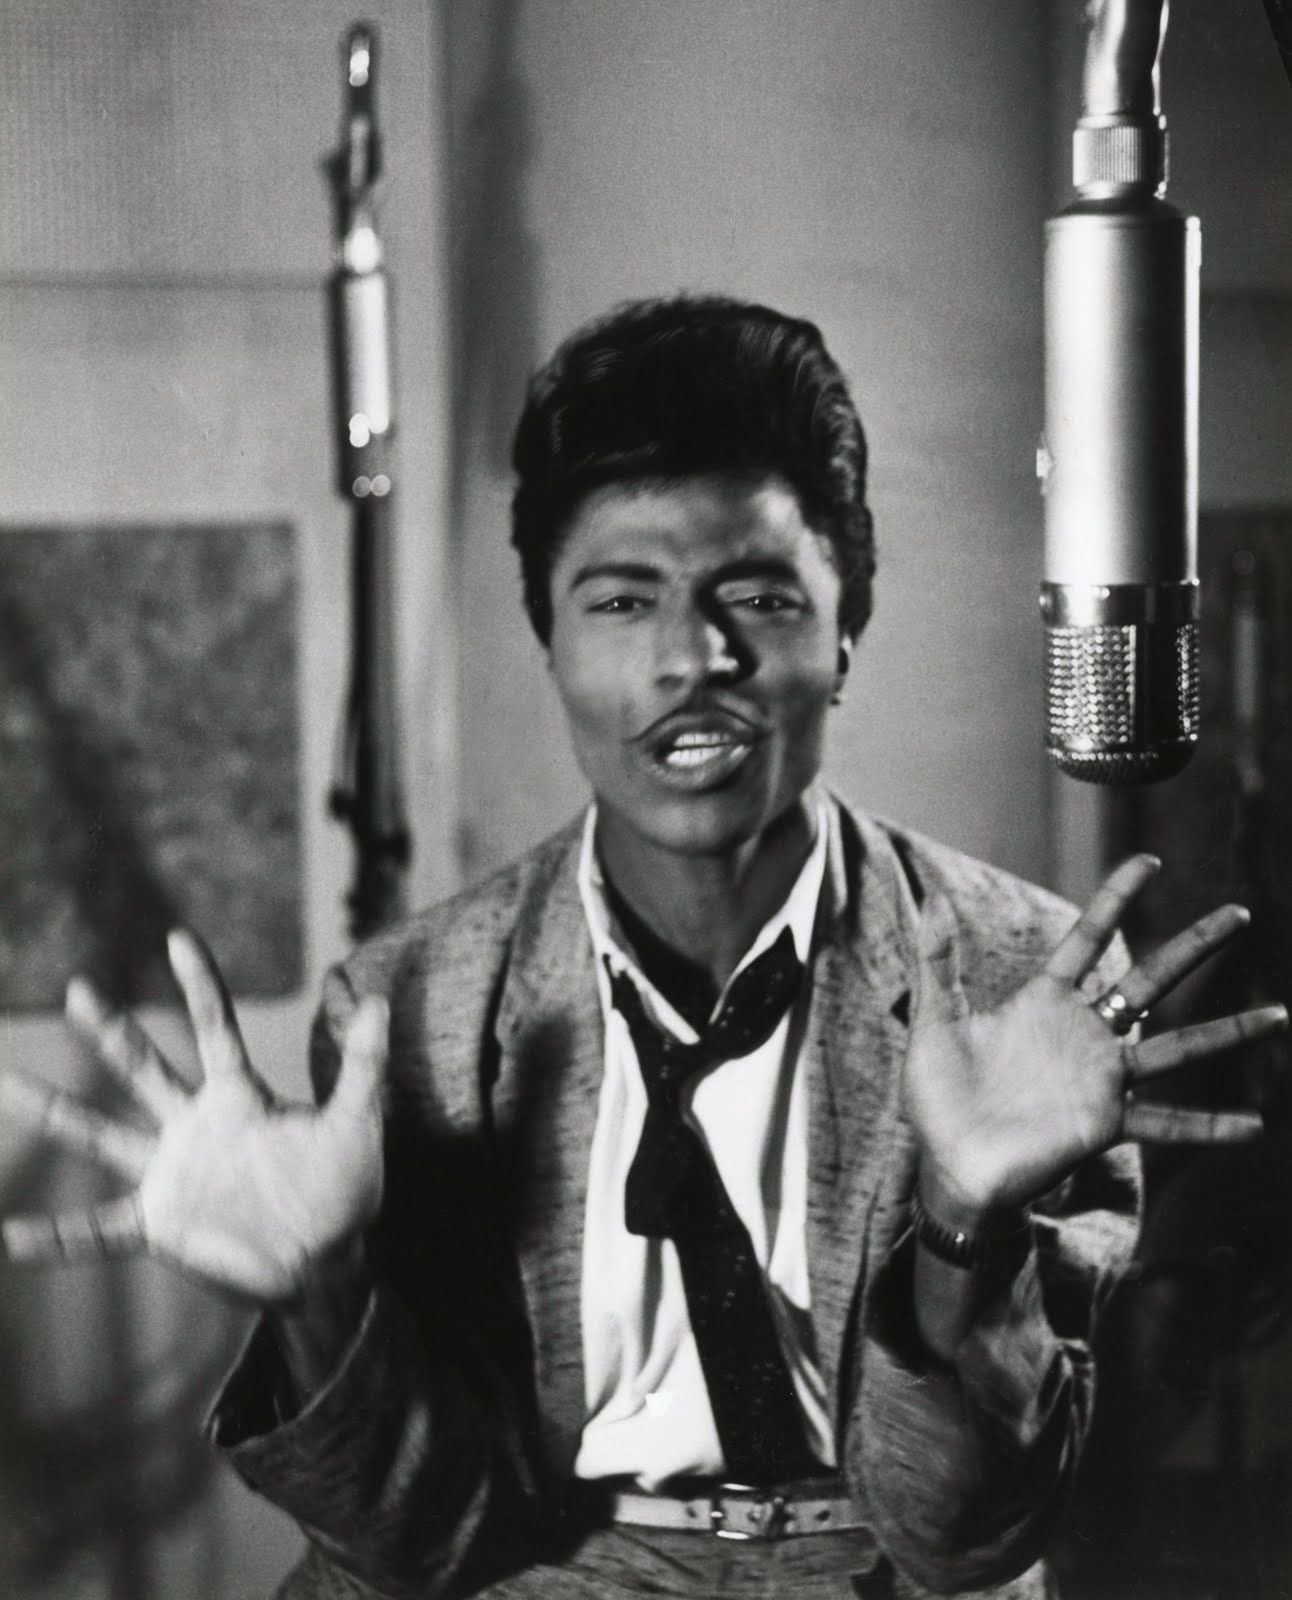 Little Richard - Oh Why? traduction en français, histoire. All in English and French: translation, history. www.rocktranslation.fr